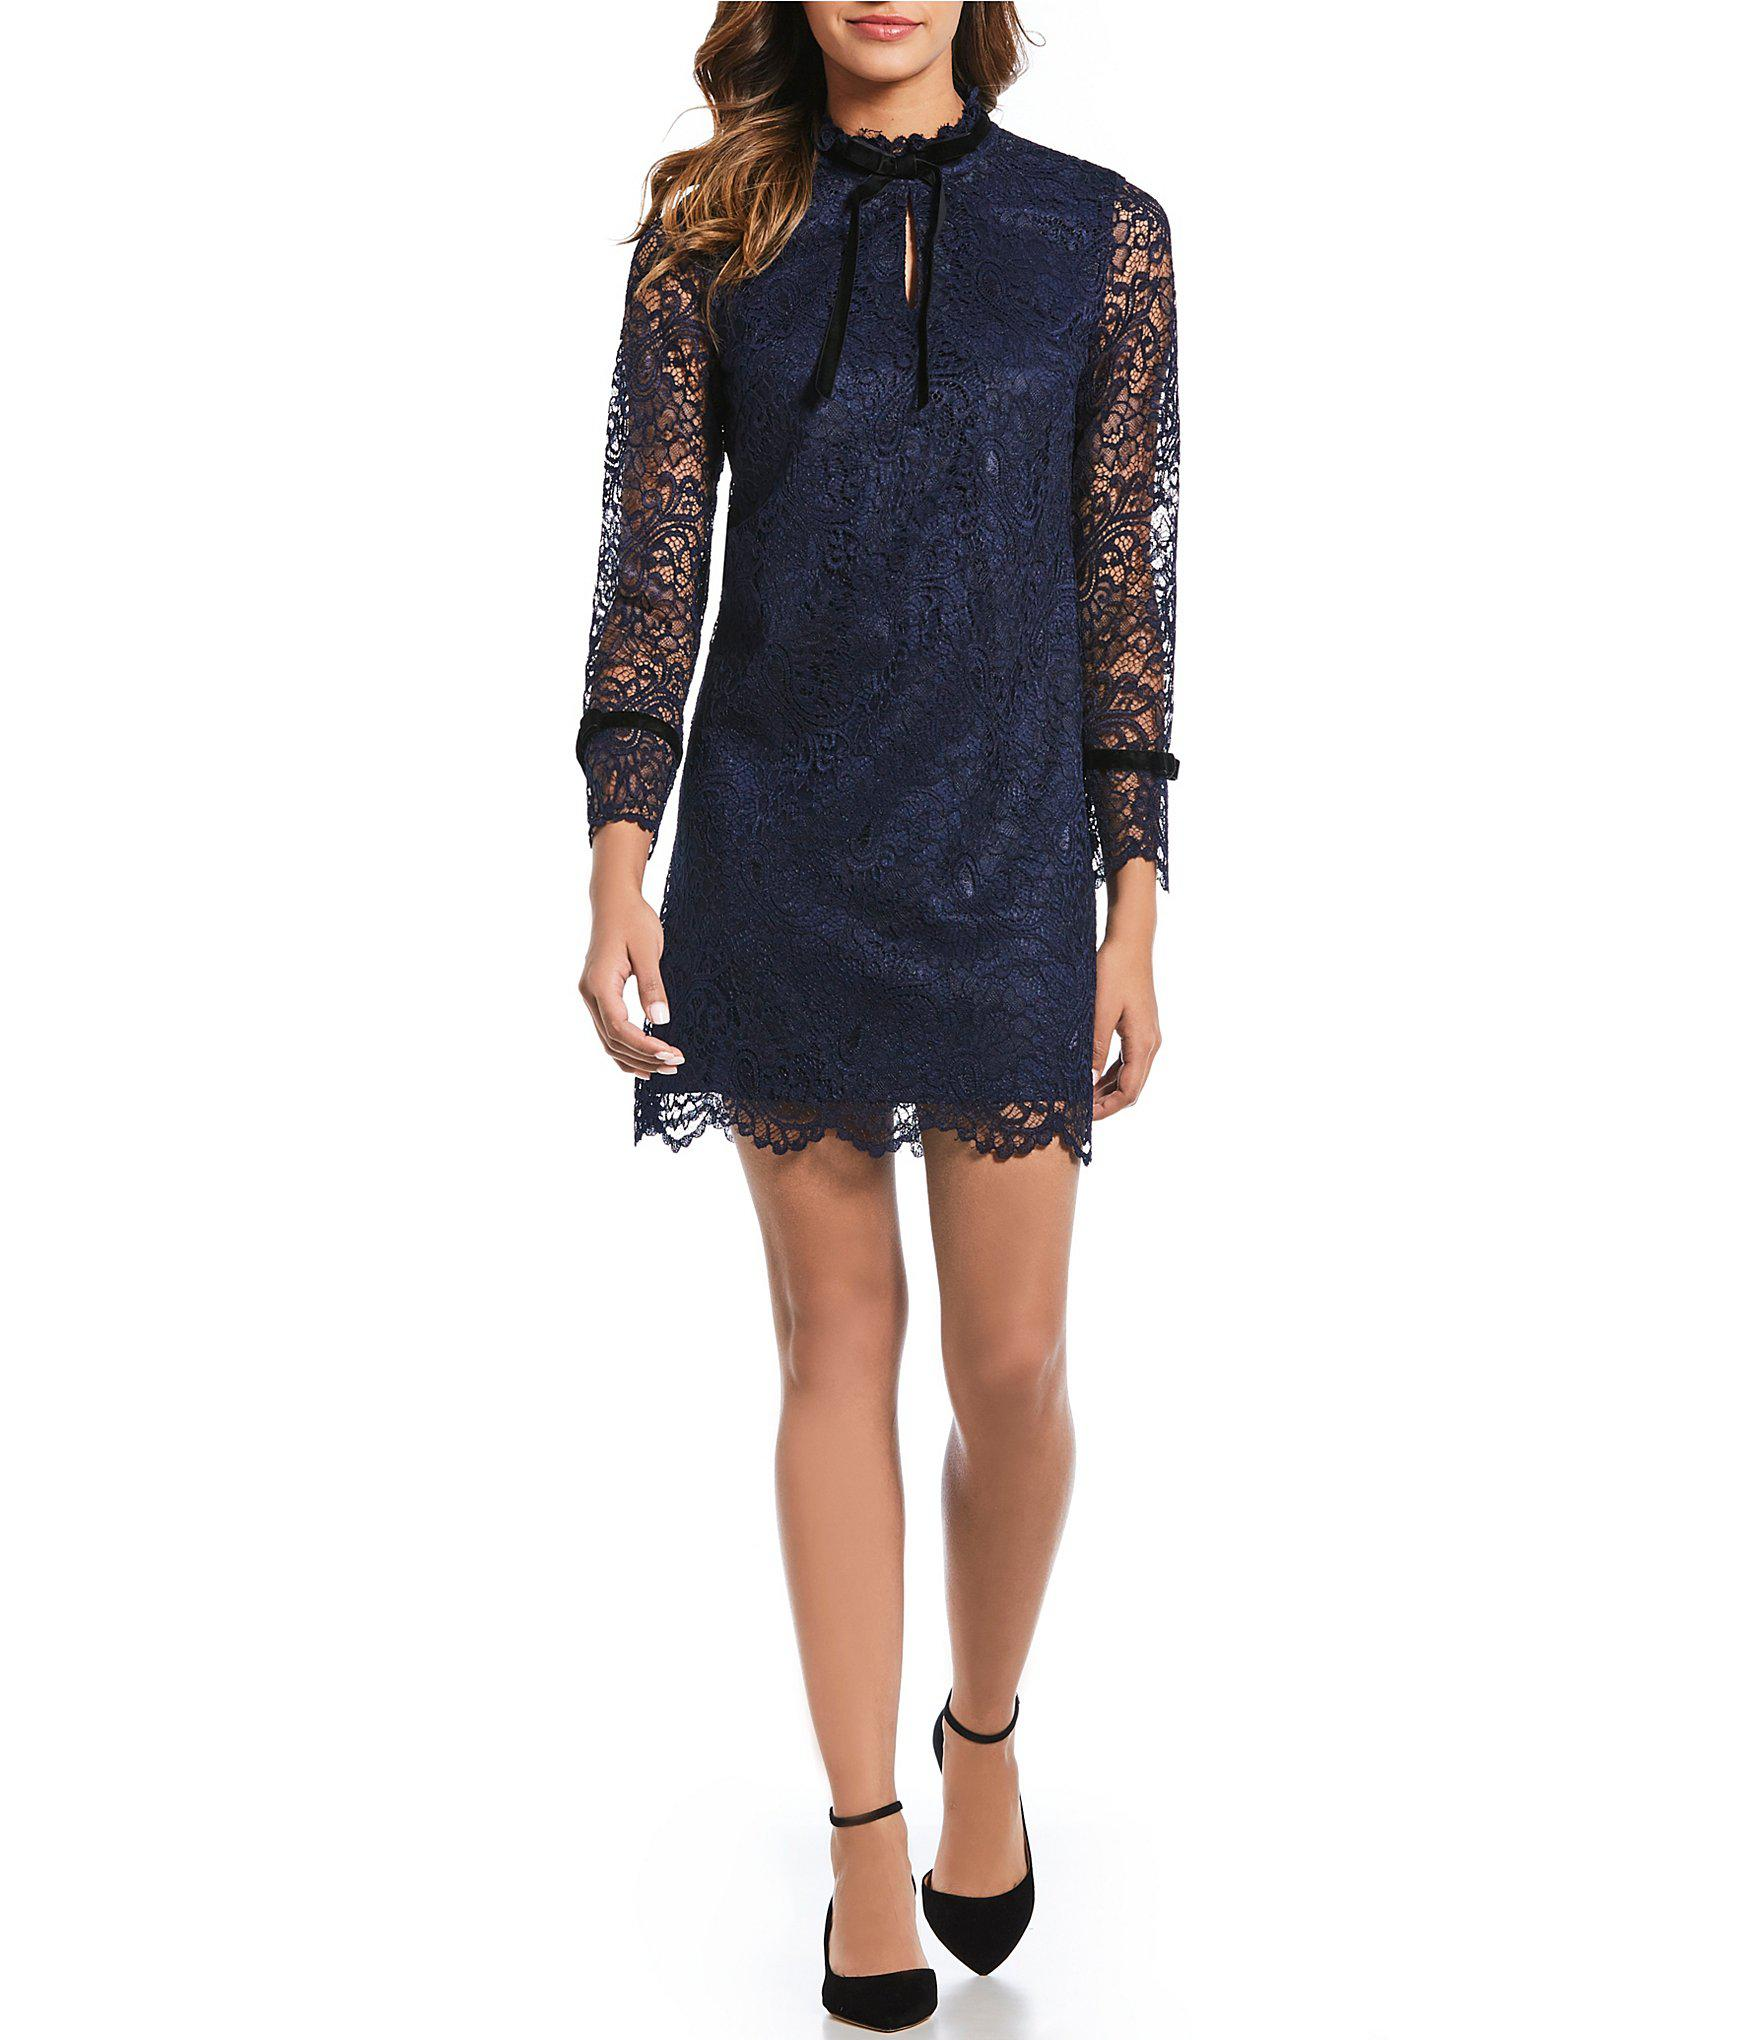 2d97b1dbcca1 Lyst - Tahari Petite Size Lace Velvet Tie Neck Sheath Dress in Blue